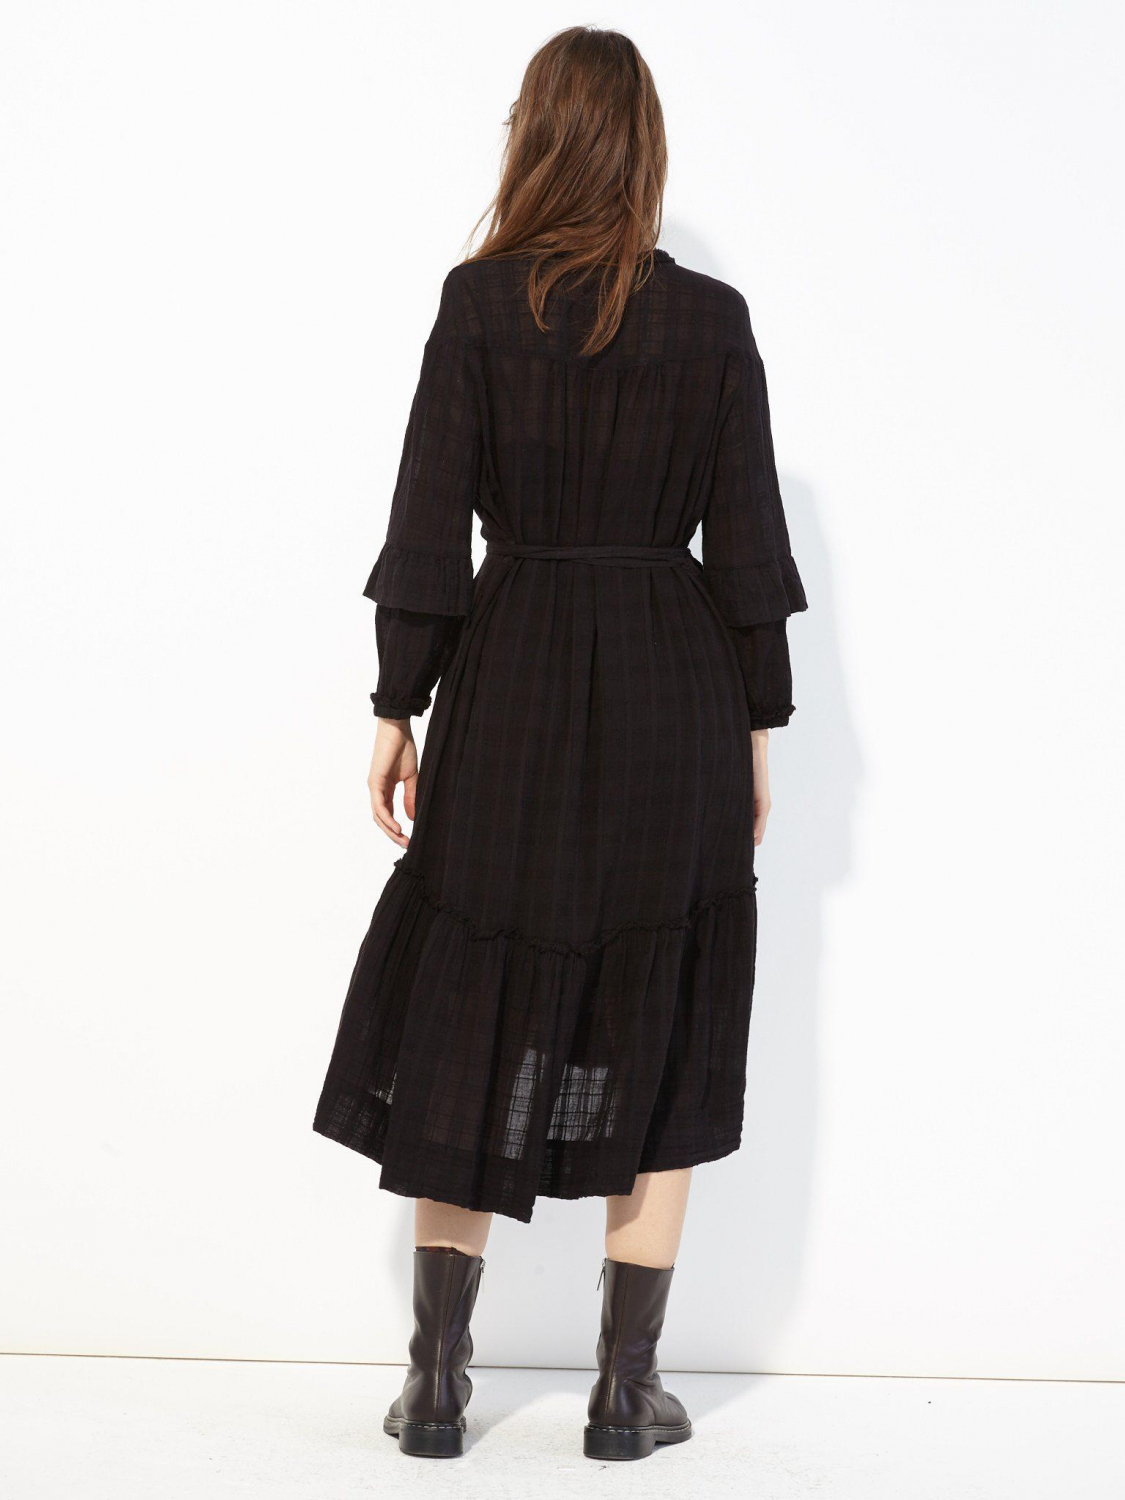 Raquel Allegra Pré-Collection Victorian Ruffle Dress - Black